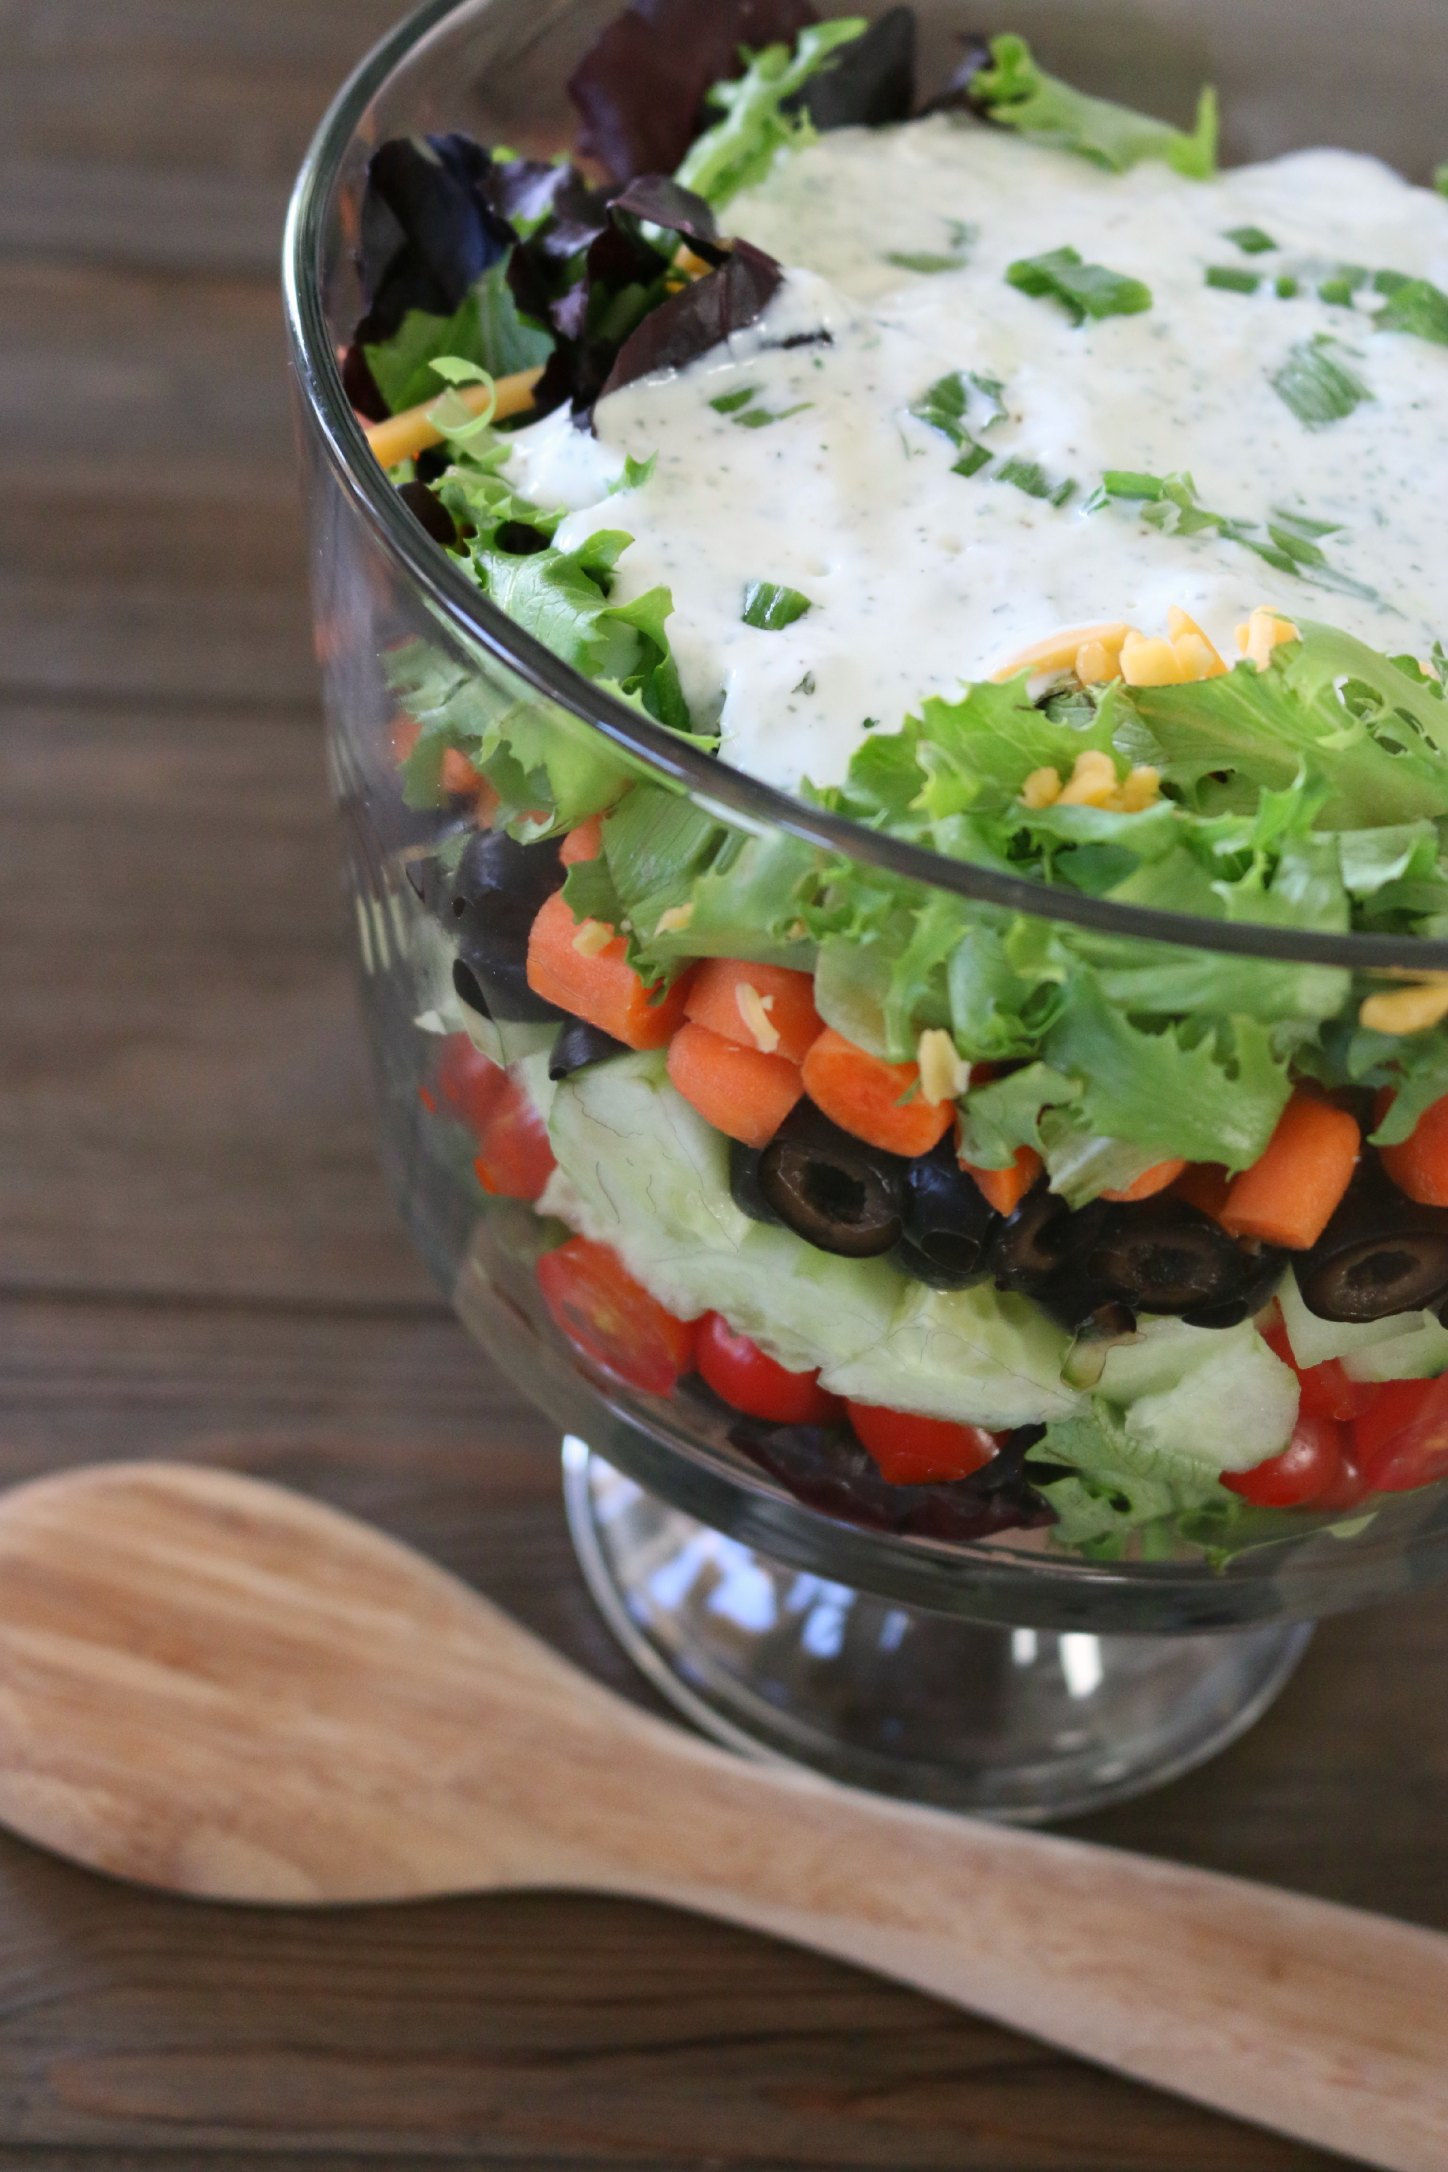 lowfat ranch dressing salad